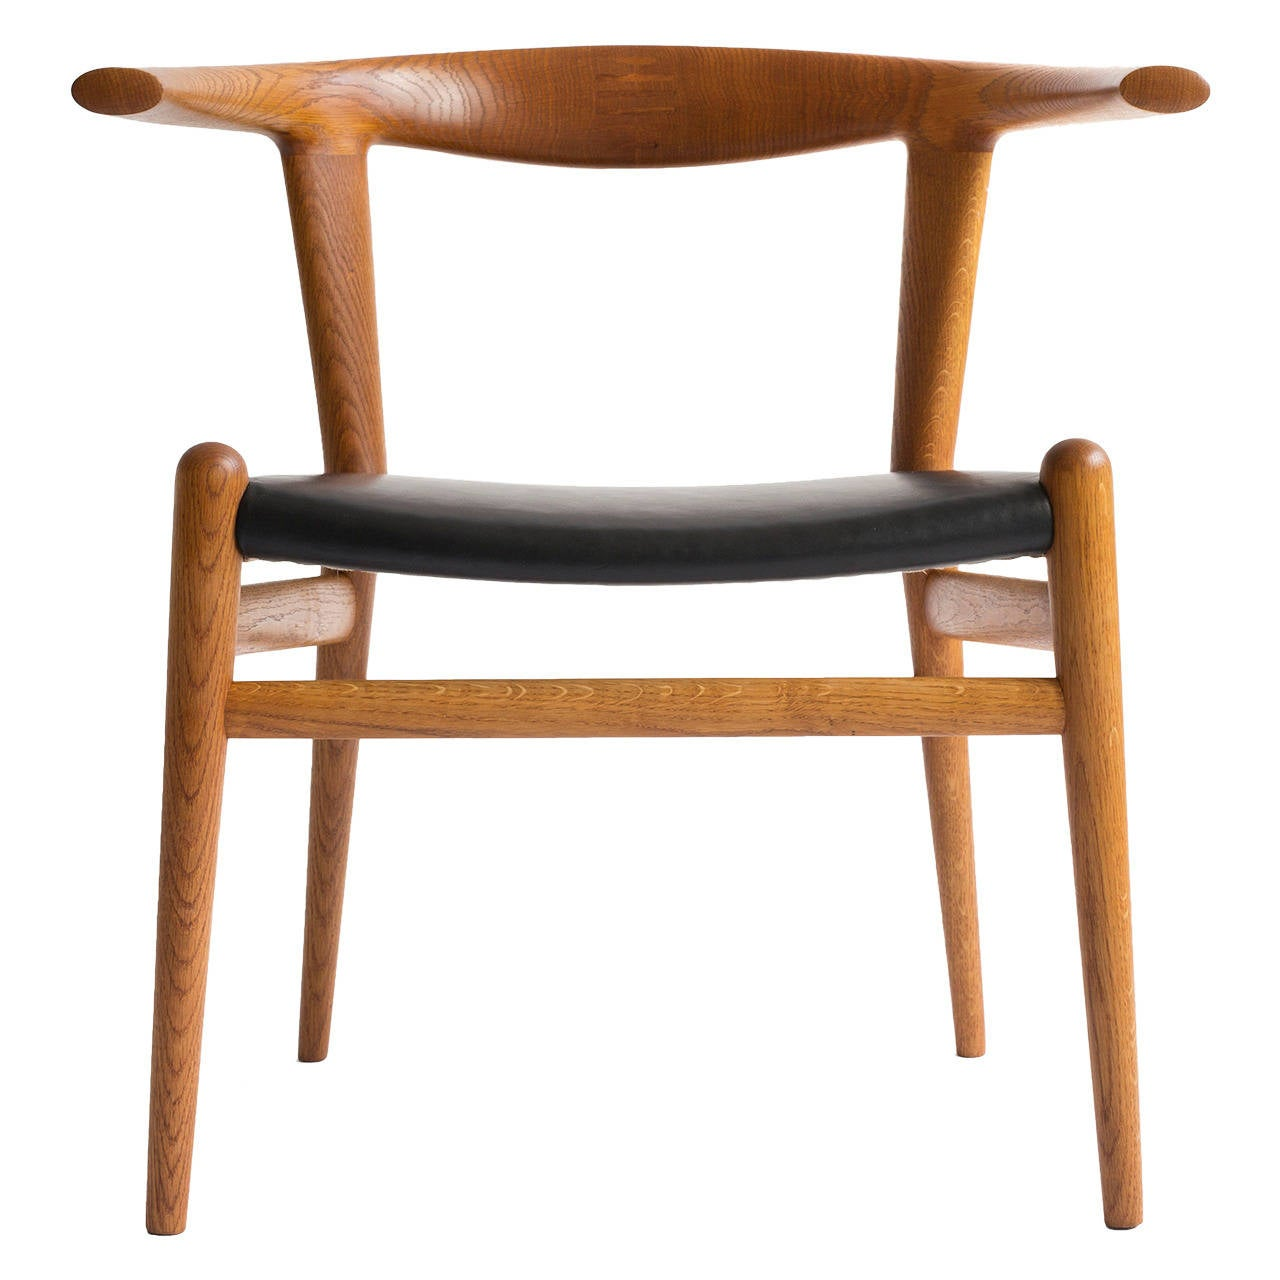 Hans J. Wegner 'Bull Chair' 1